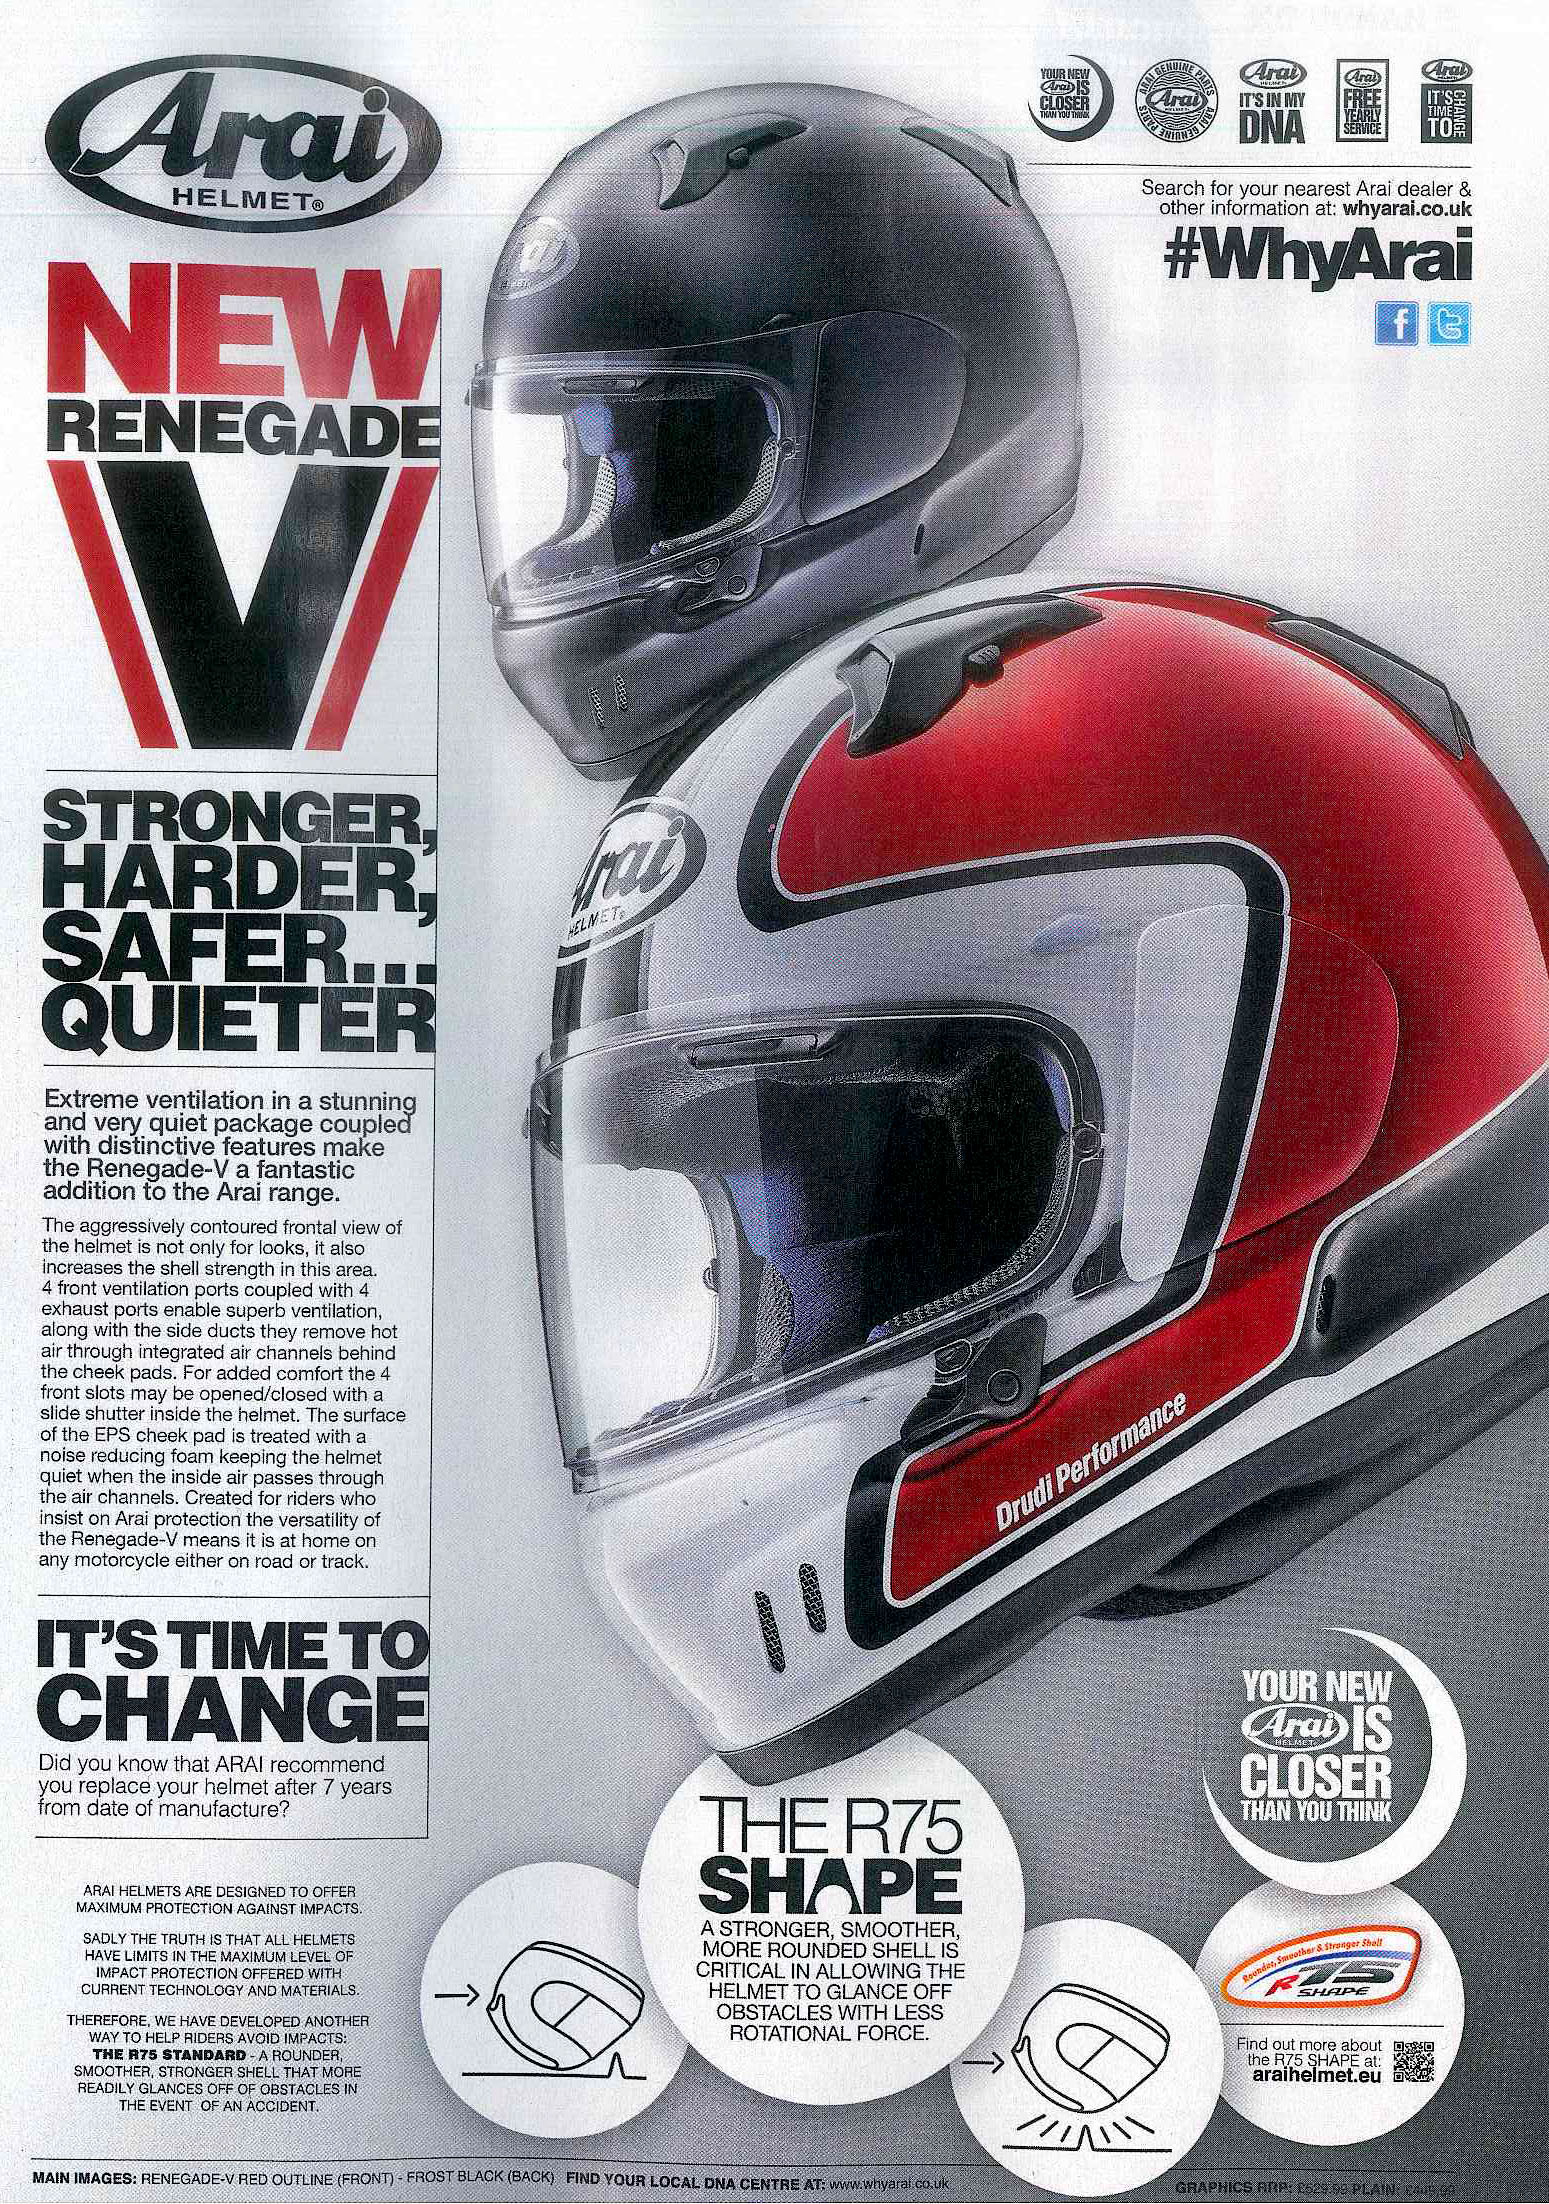 The new Renegade V ad